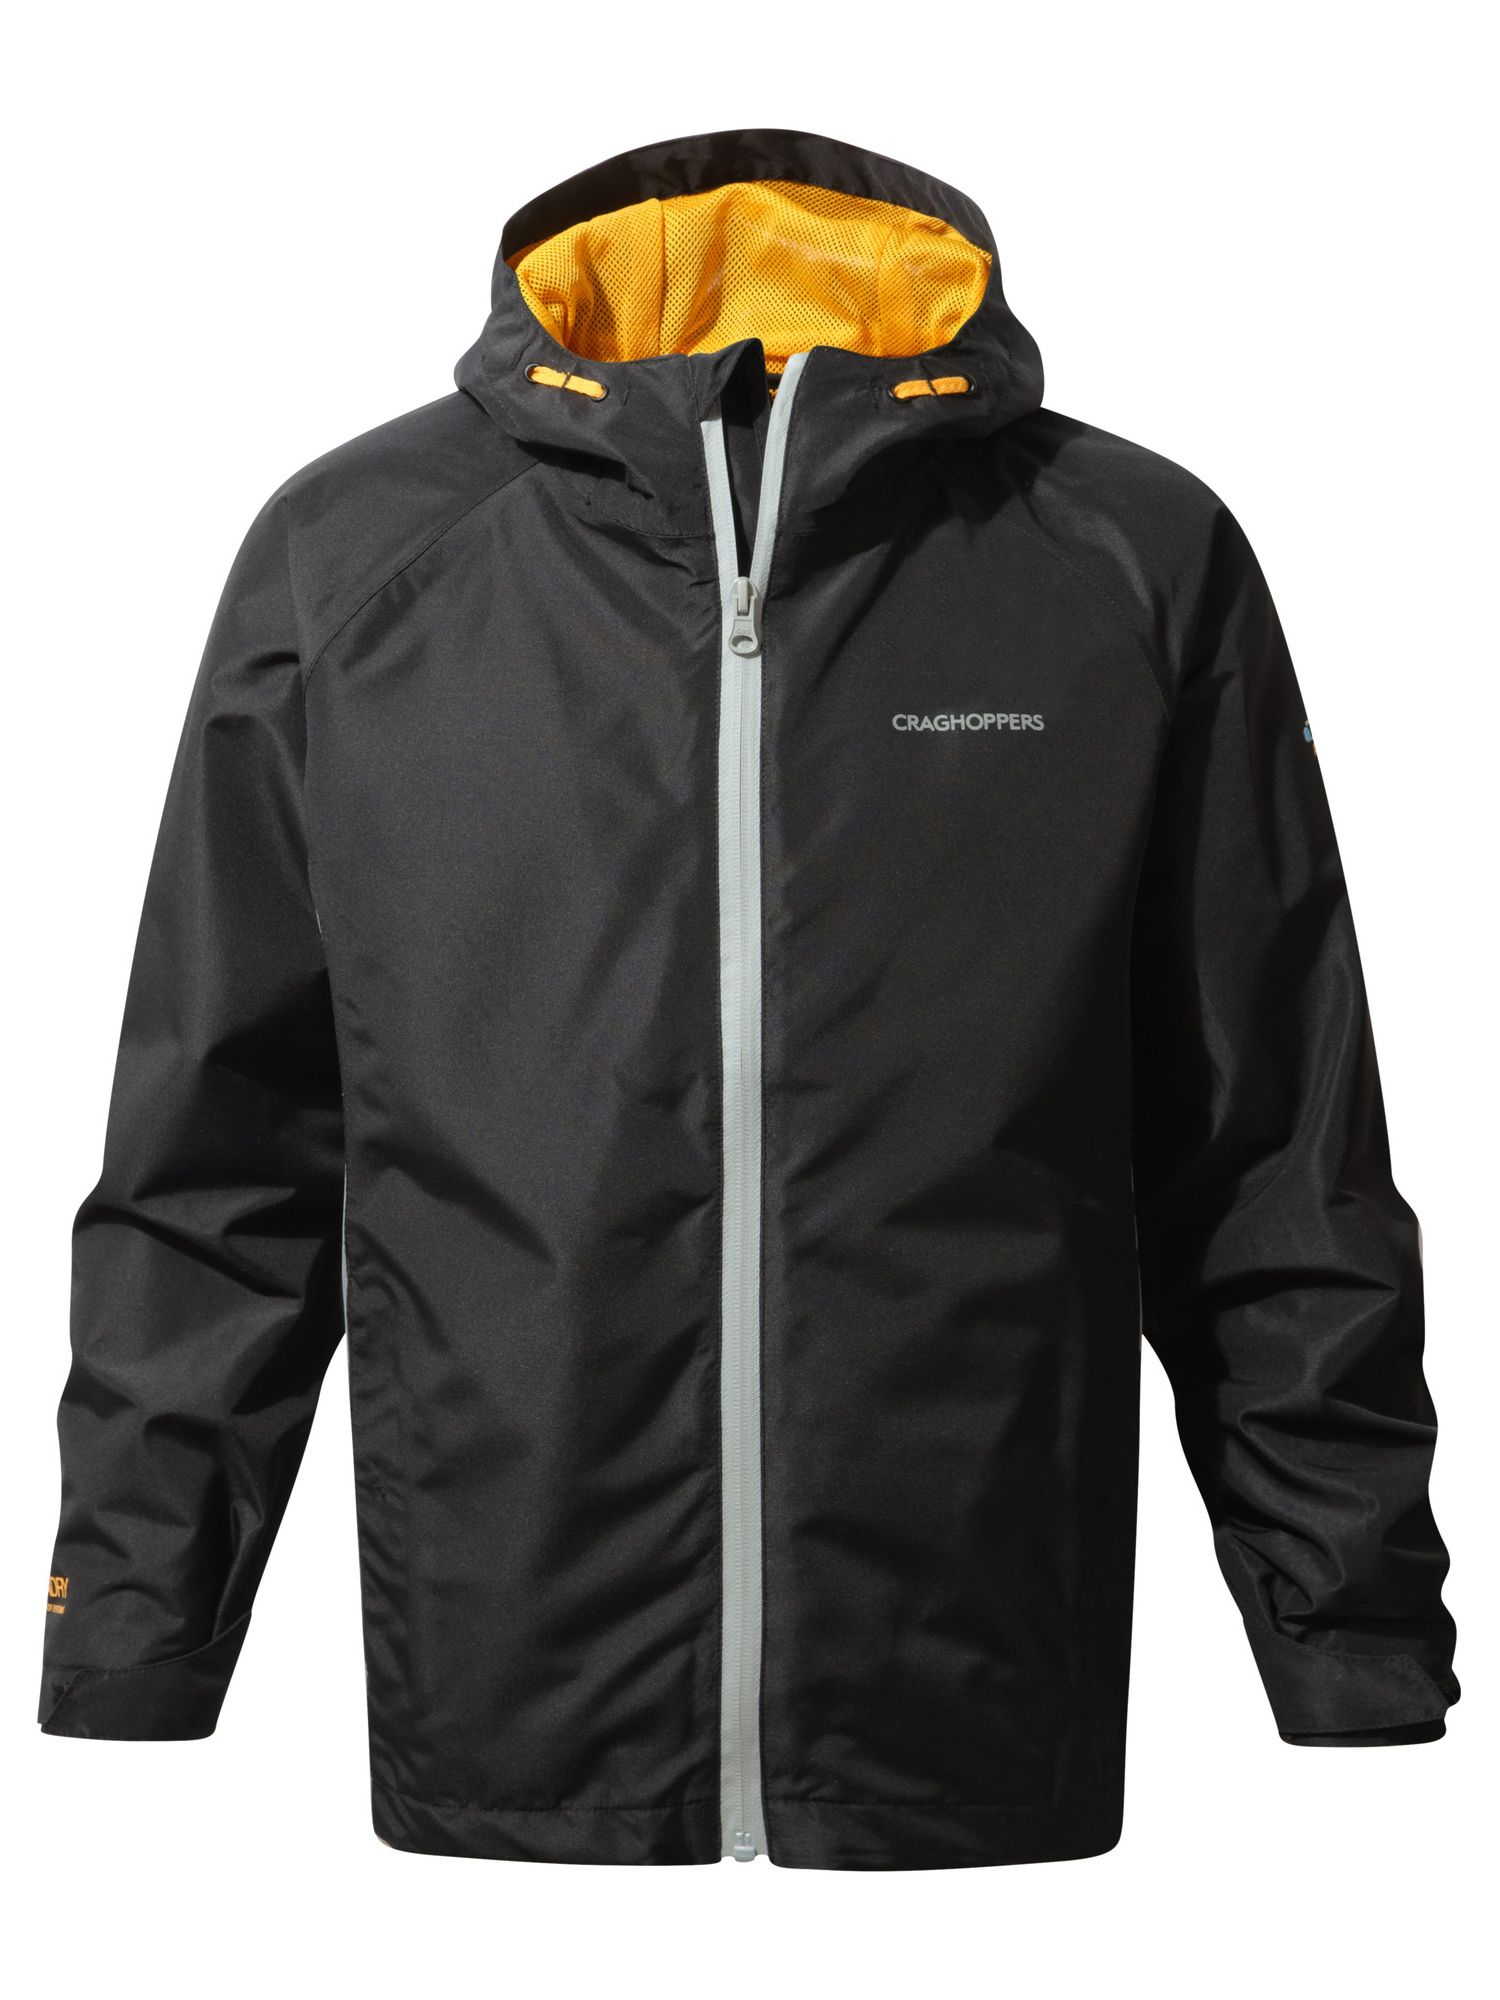 Photo of Craghoppers kids discovery waterproof jacket- black